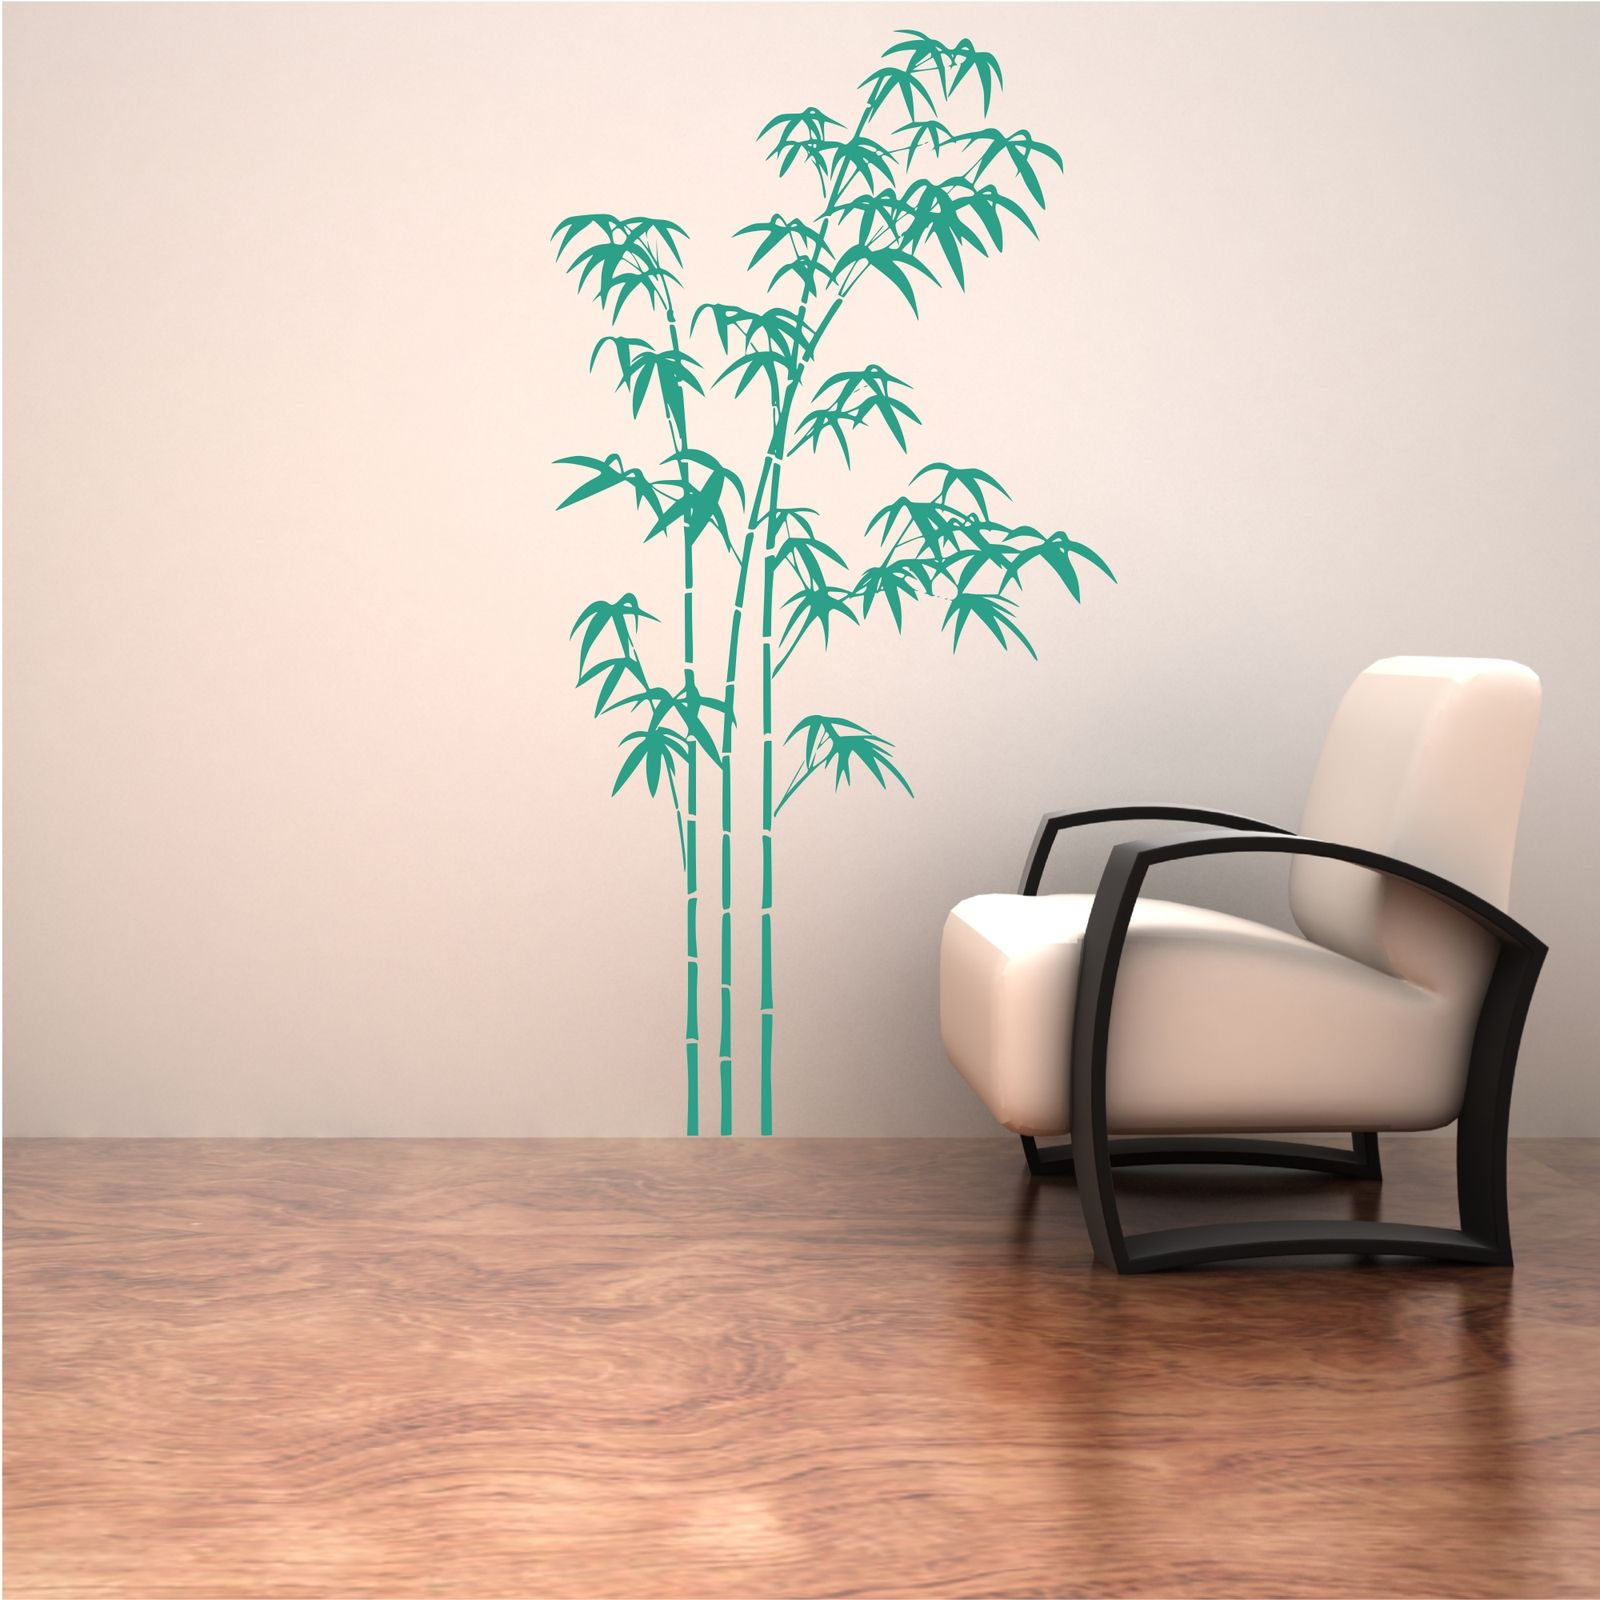 Bamboo tree grass wild jungle wall sticker decal stencil for Pochoir mural geant